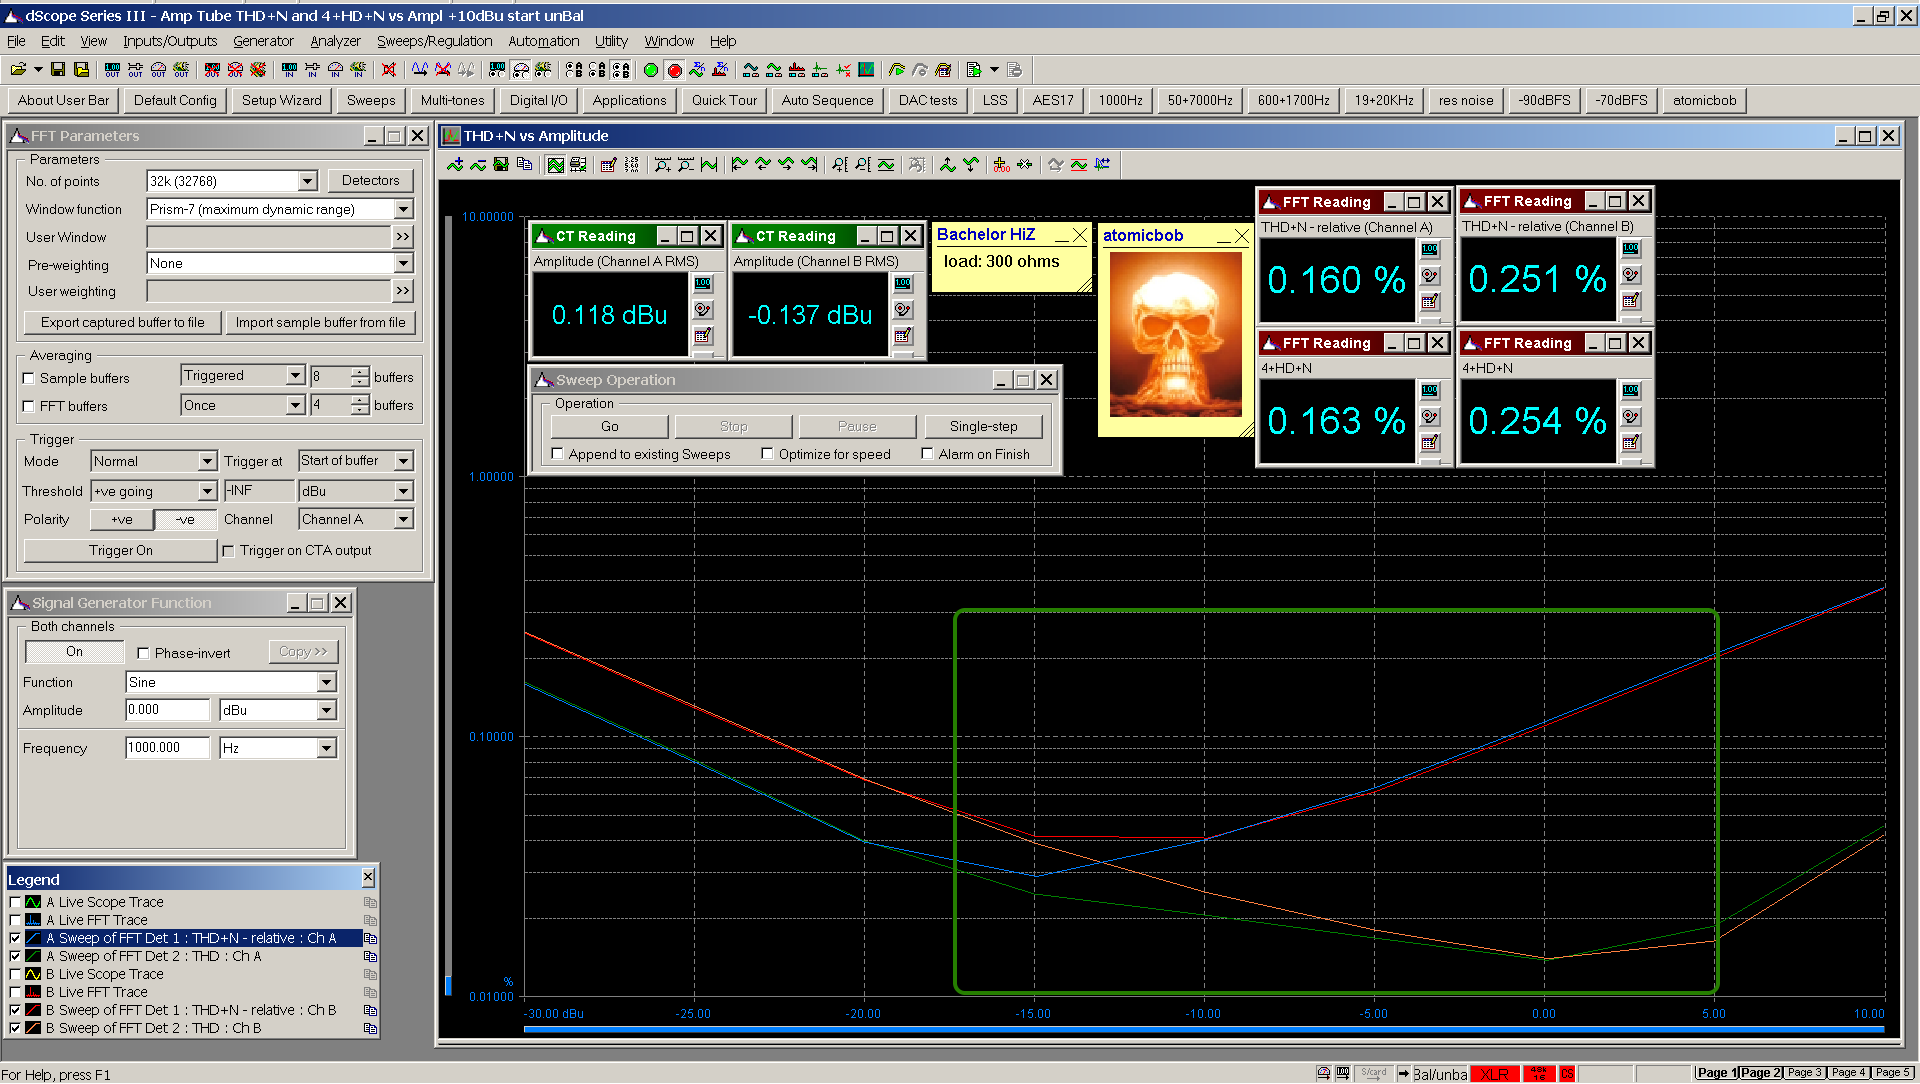 03 20200623 Bachelor 6z1p THD+N 4+HD+N vs dBu 1000Hz 300R HiZ 0dB gain - annotated 2.png